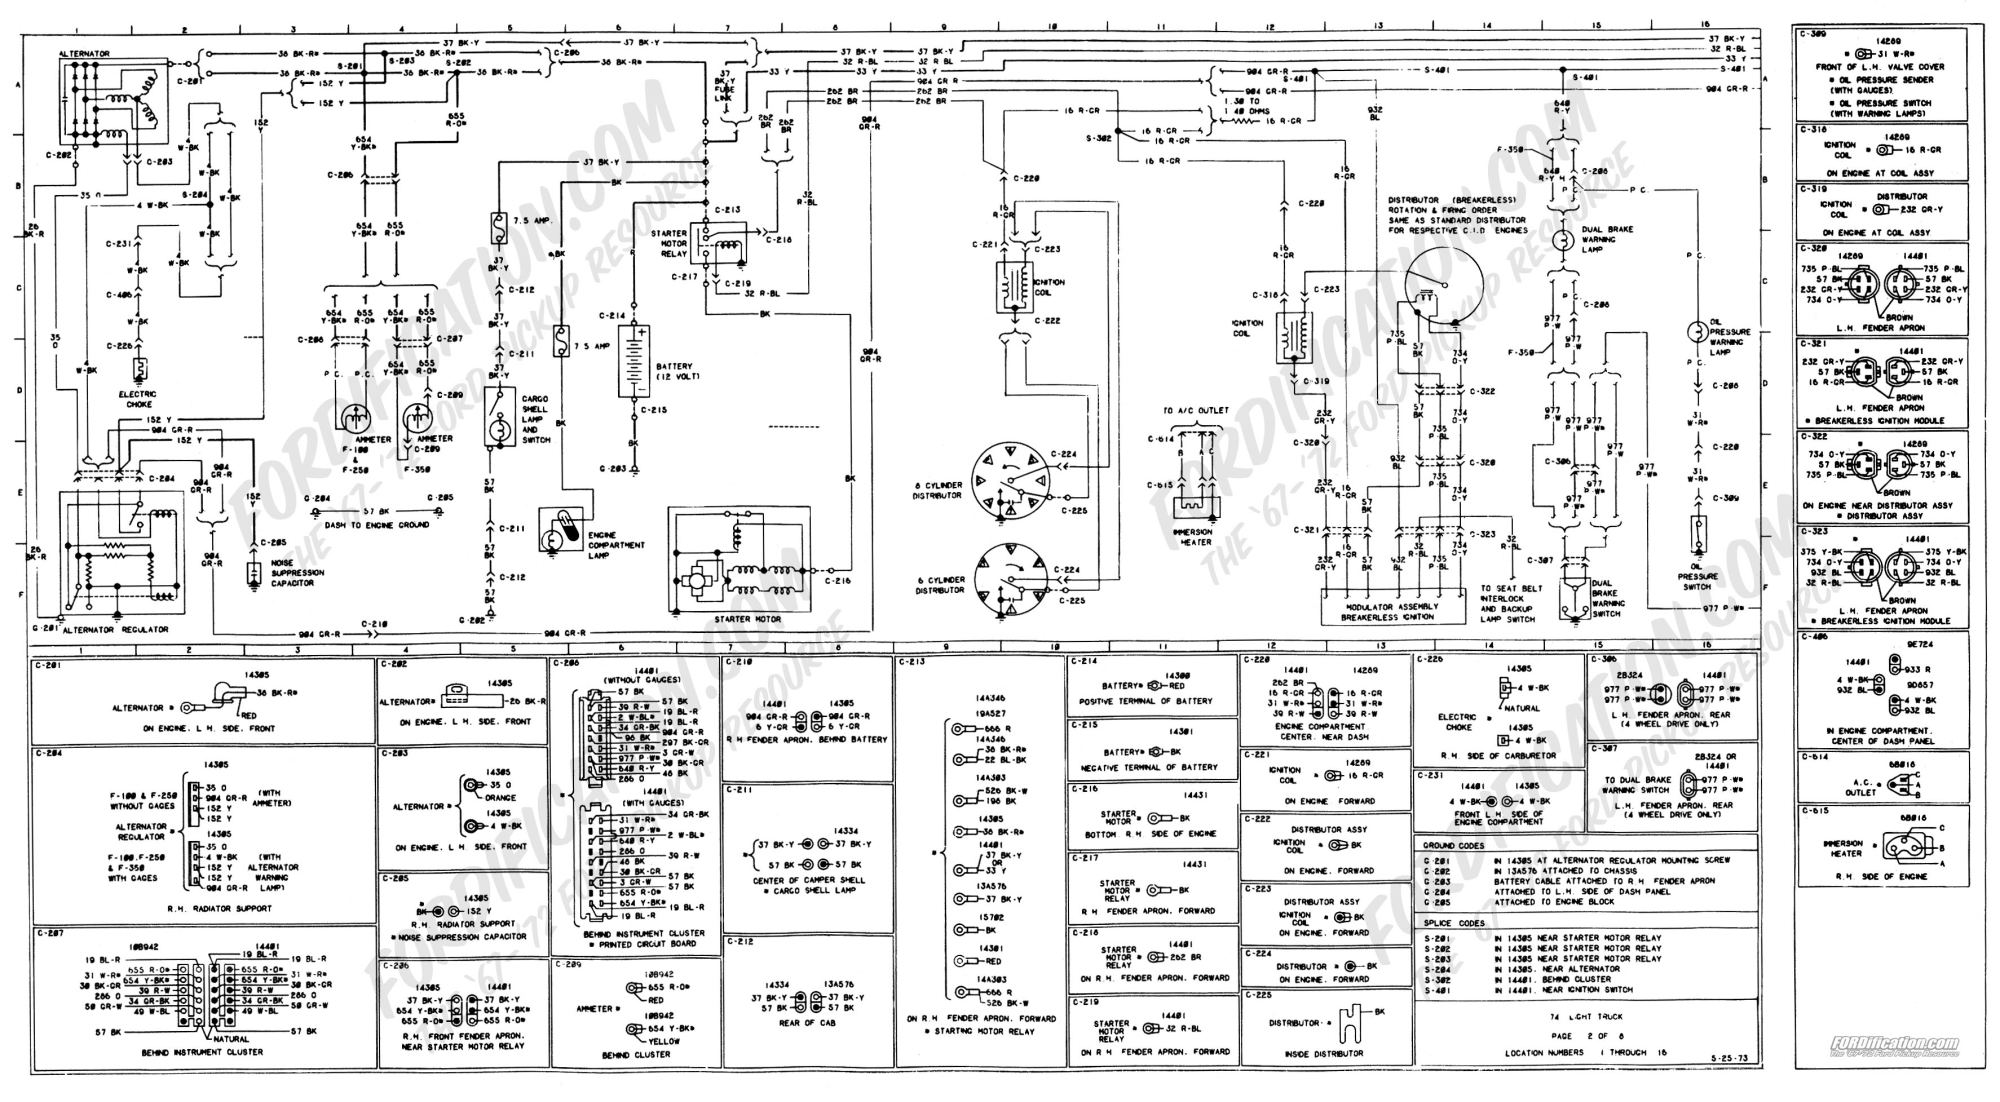 hight resolution of 2004 f650 fuse panel diagram wiring diagram centre